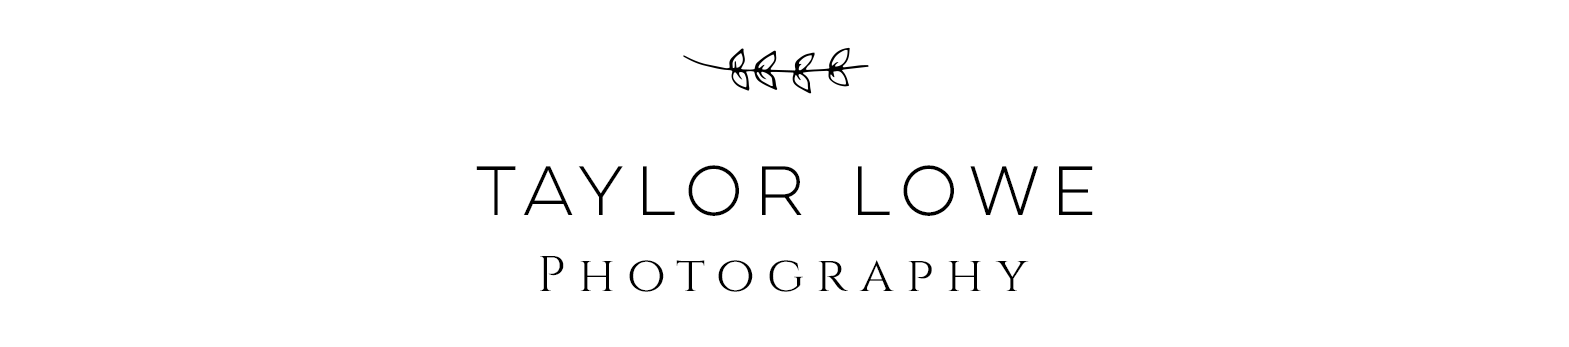 Taylor Lowe Photography